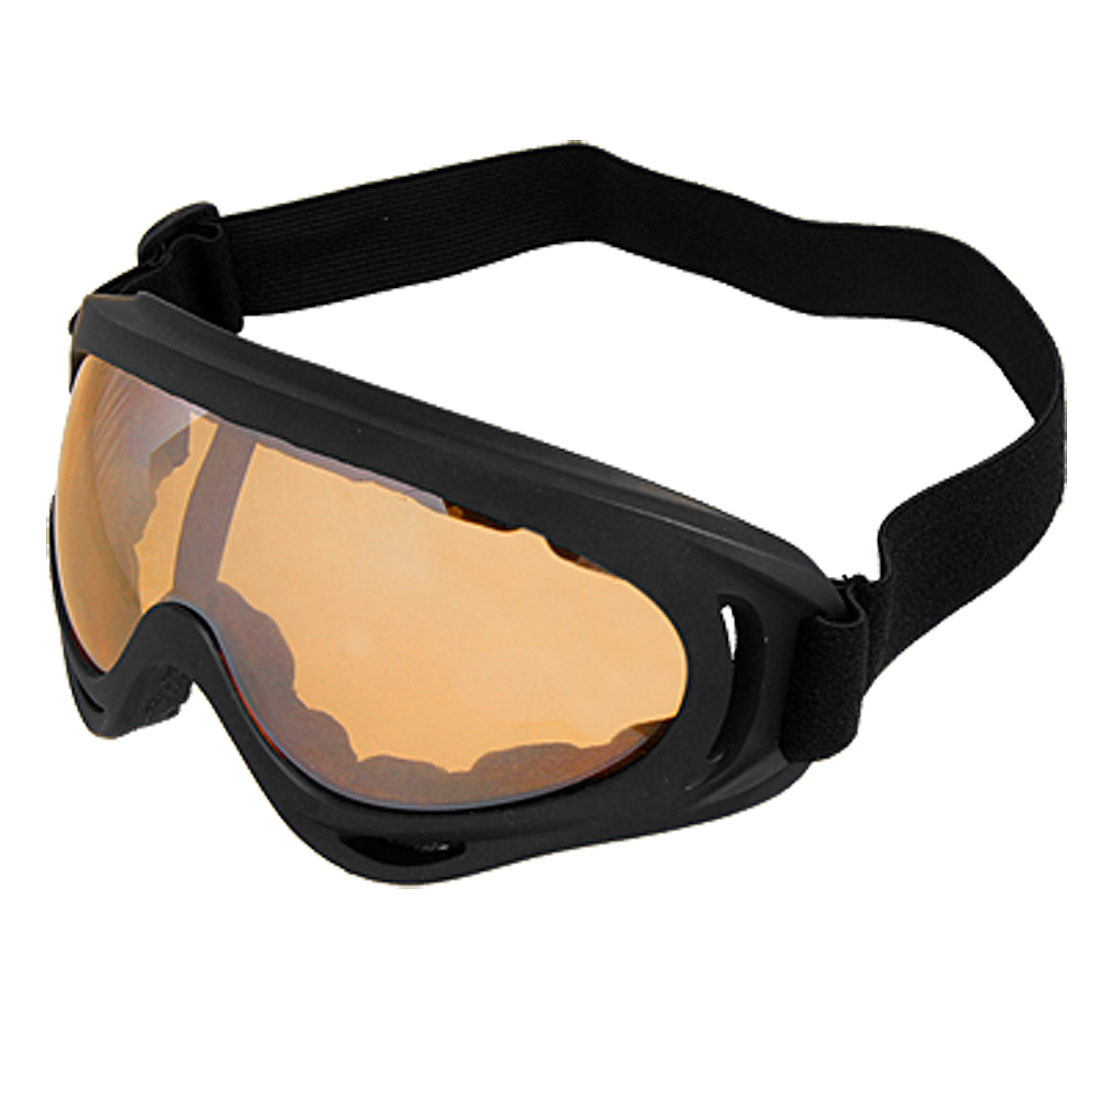 Adjustable Strap Sponge Pad Skiing Glasses for Lady Man by